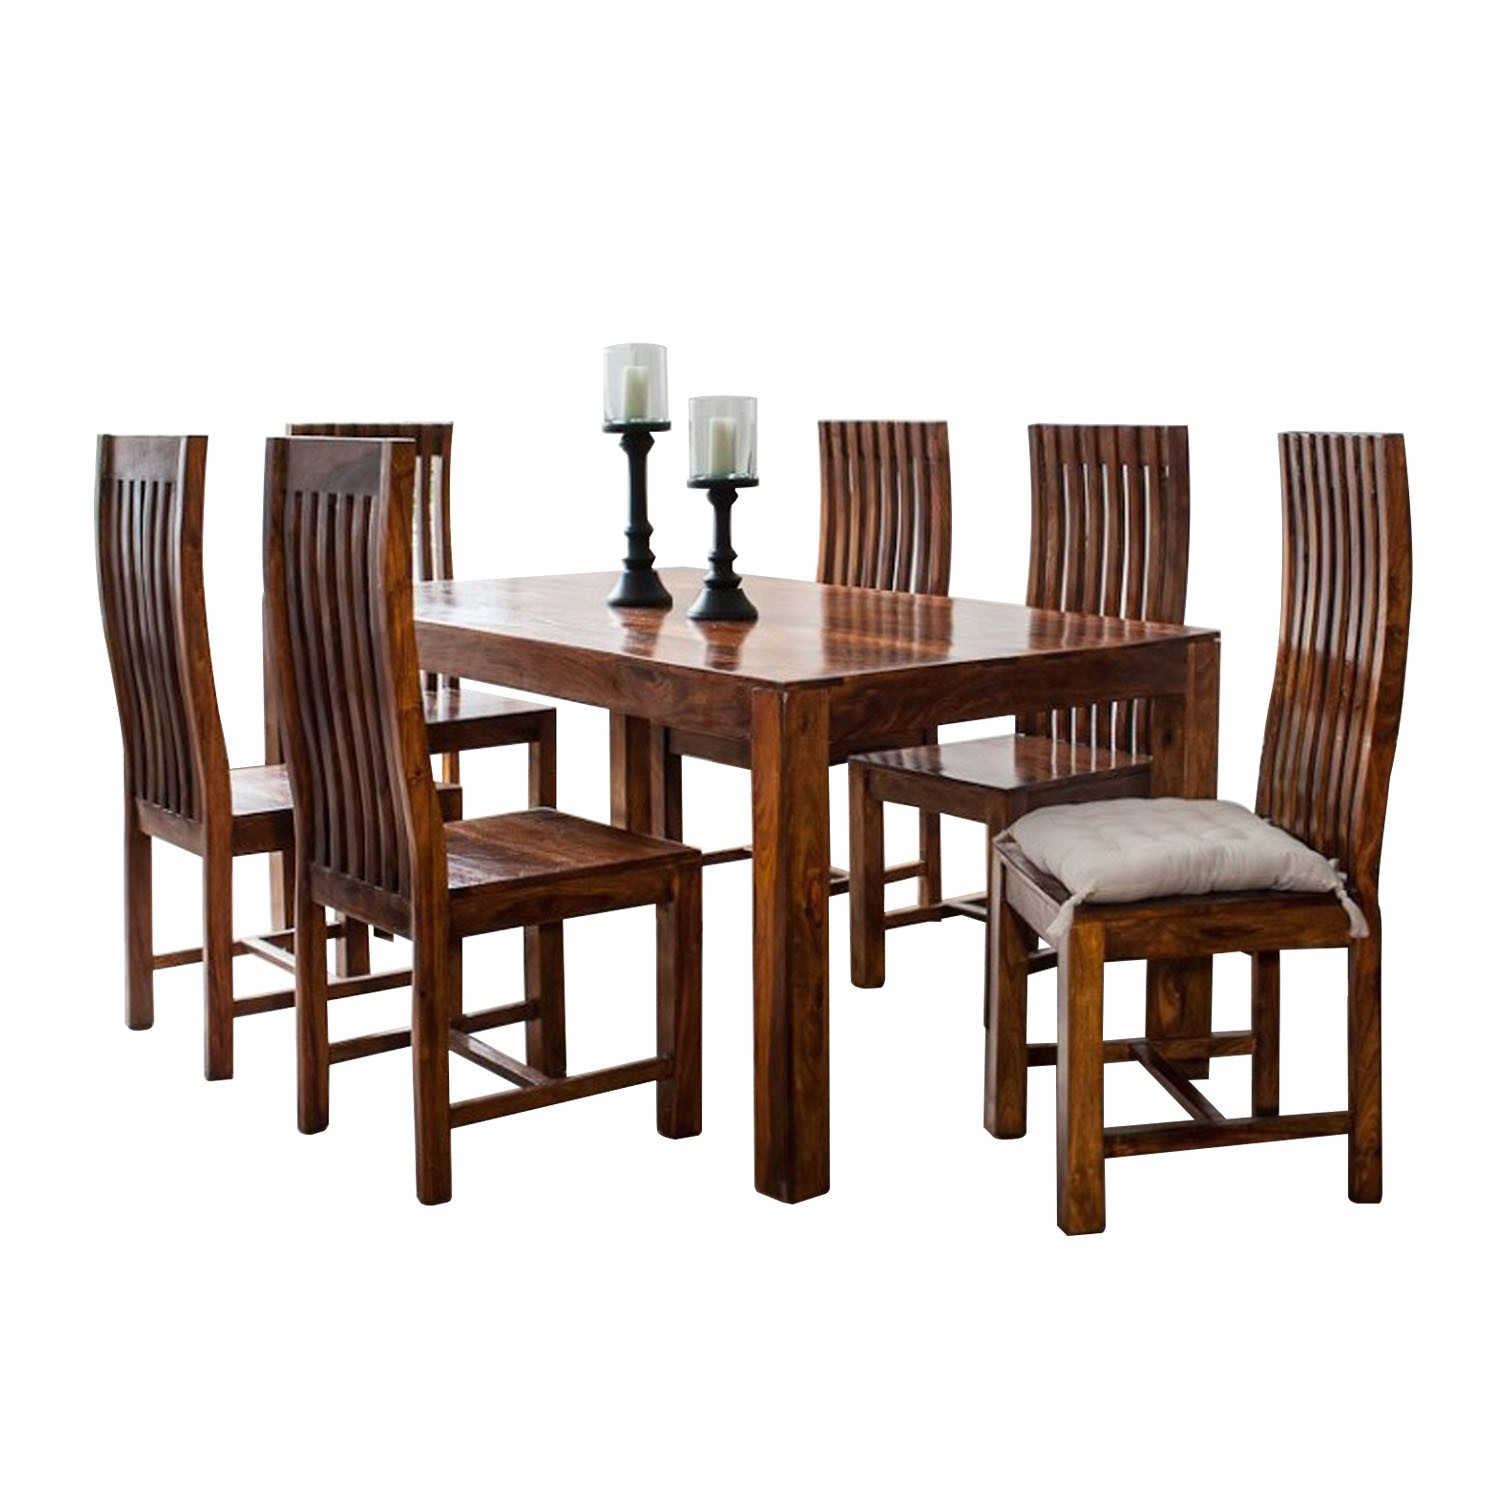 Delicieux Red Dining Set. Home / Dining Sets / Red Dining Set